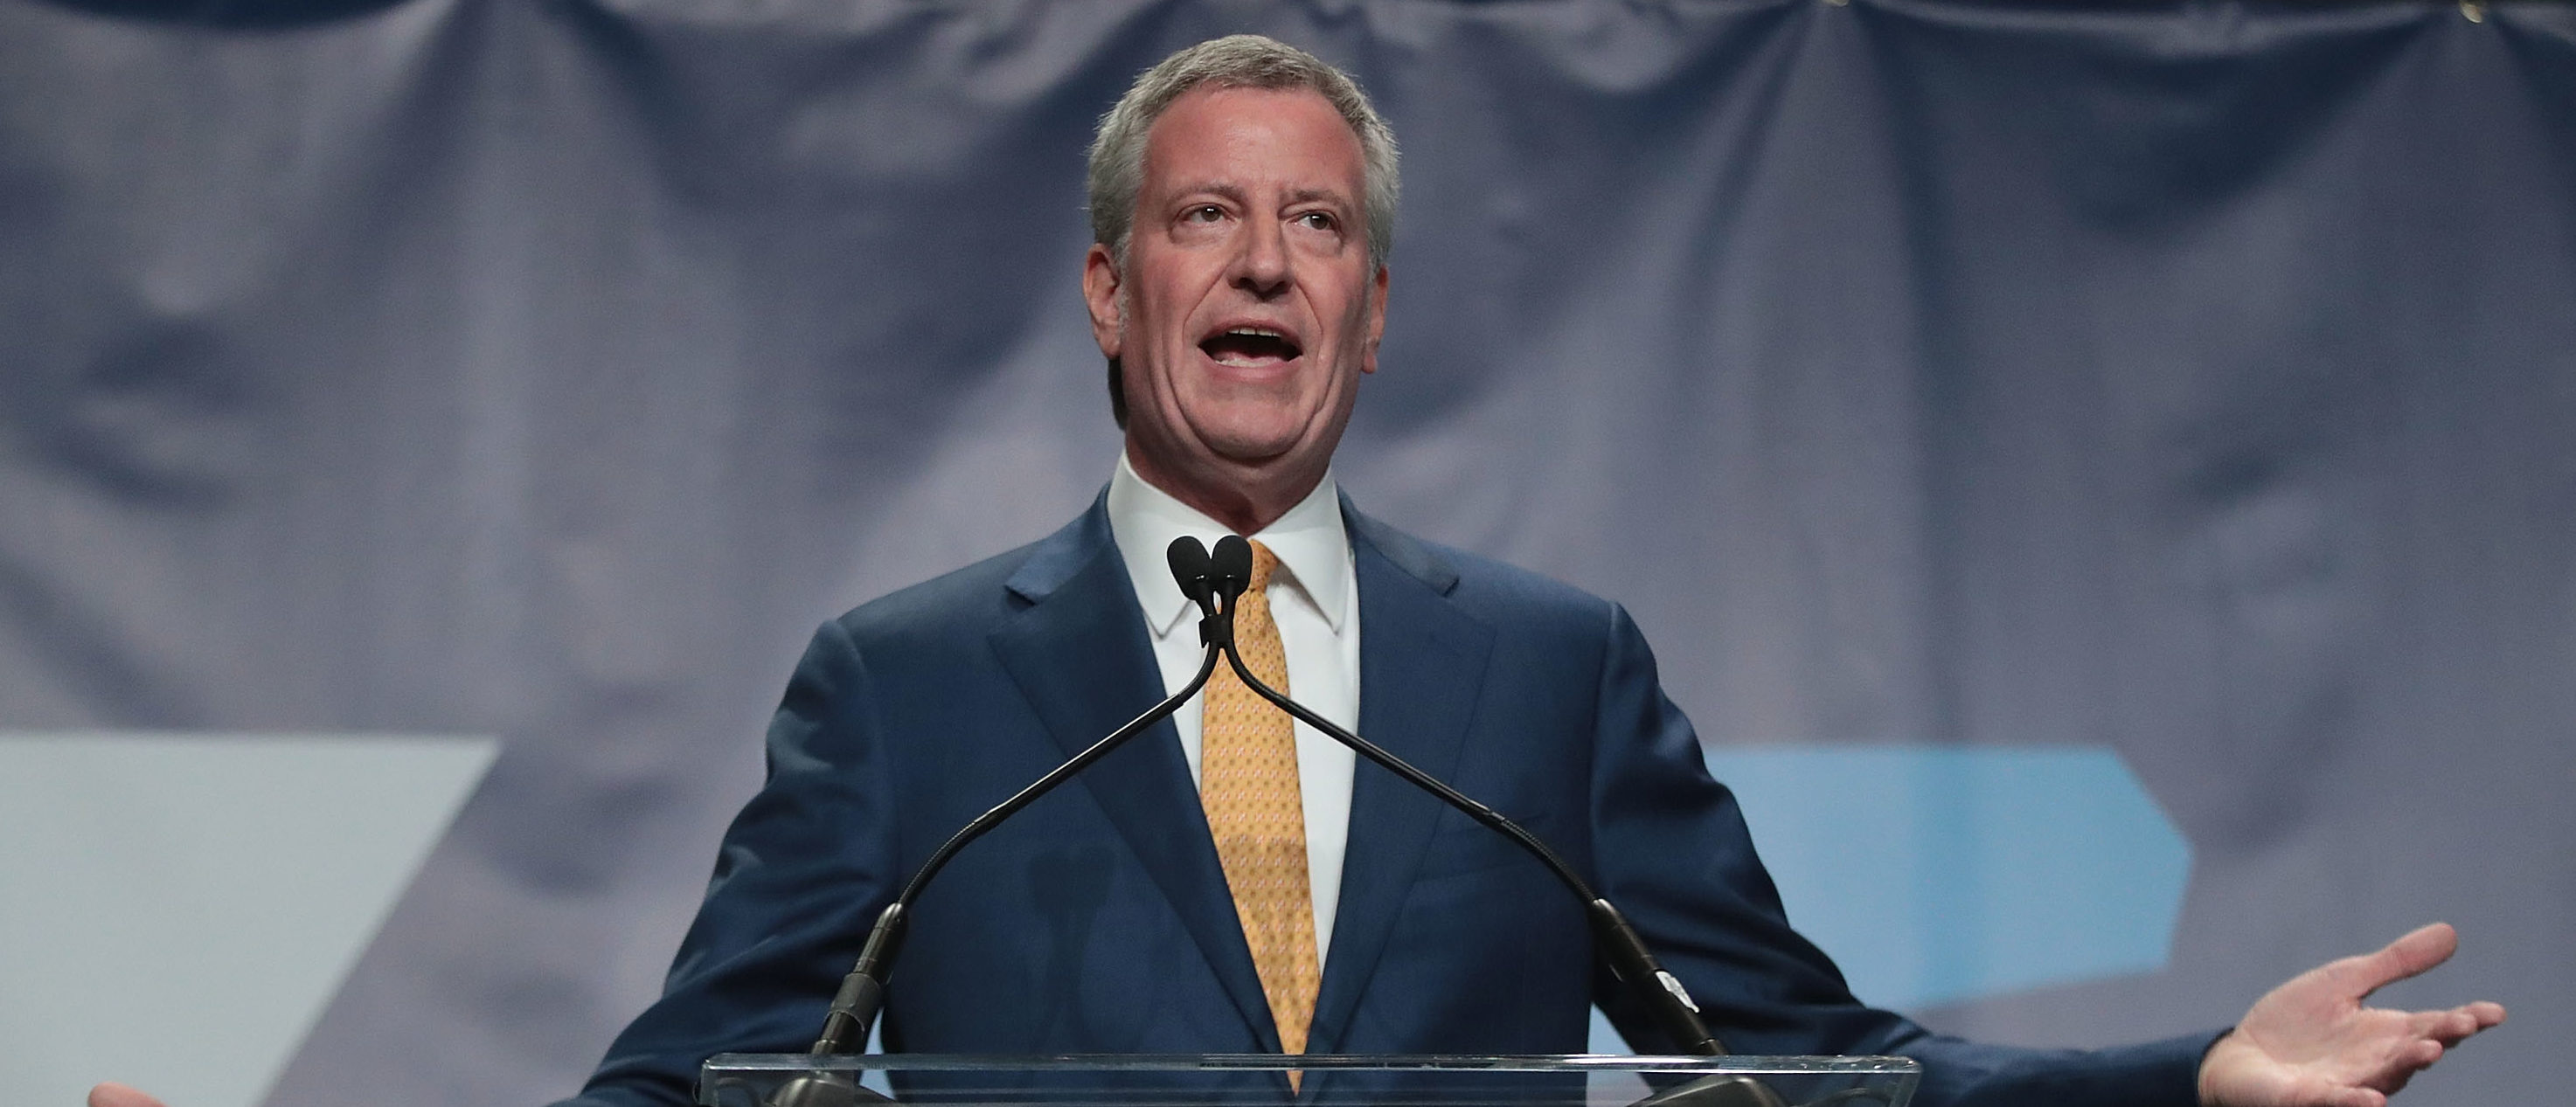 CEDAR RAPIDS, IOWA - JUNE 09: Democratic presidential candidate and New York City Mayor Bill De Blasio speaks at the Iowa Democratic Party's Hall of Fame Dinner on June 9, 2019 in Cedar Rapids, Iowa. Nearly all of the 23 Democratic candidates running for president were campaigning in Iowa this weekend. President Donald Trump has two events scheduled in the state on Tuesday. (Photo by Scott Olson/Getty Images)